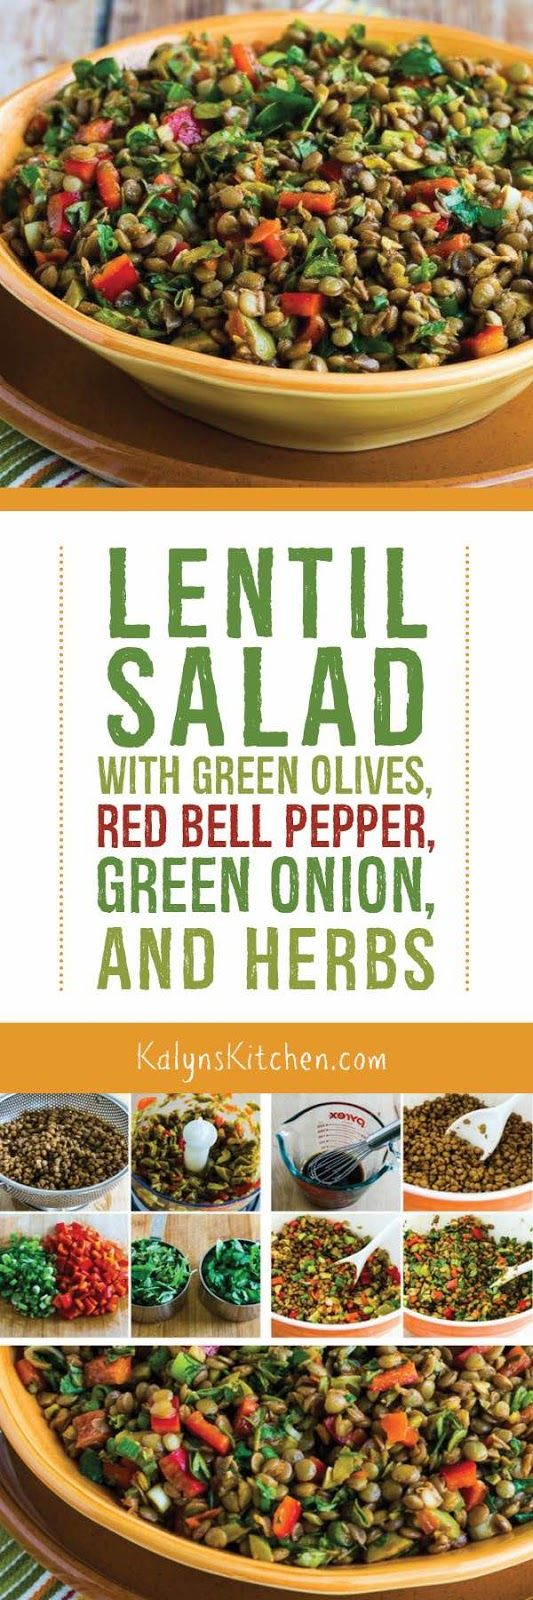 Lentil Salad with Green Olives, Red Bell Pepper, Green Onion, and Herbs found on KalynsKitchen.com